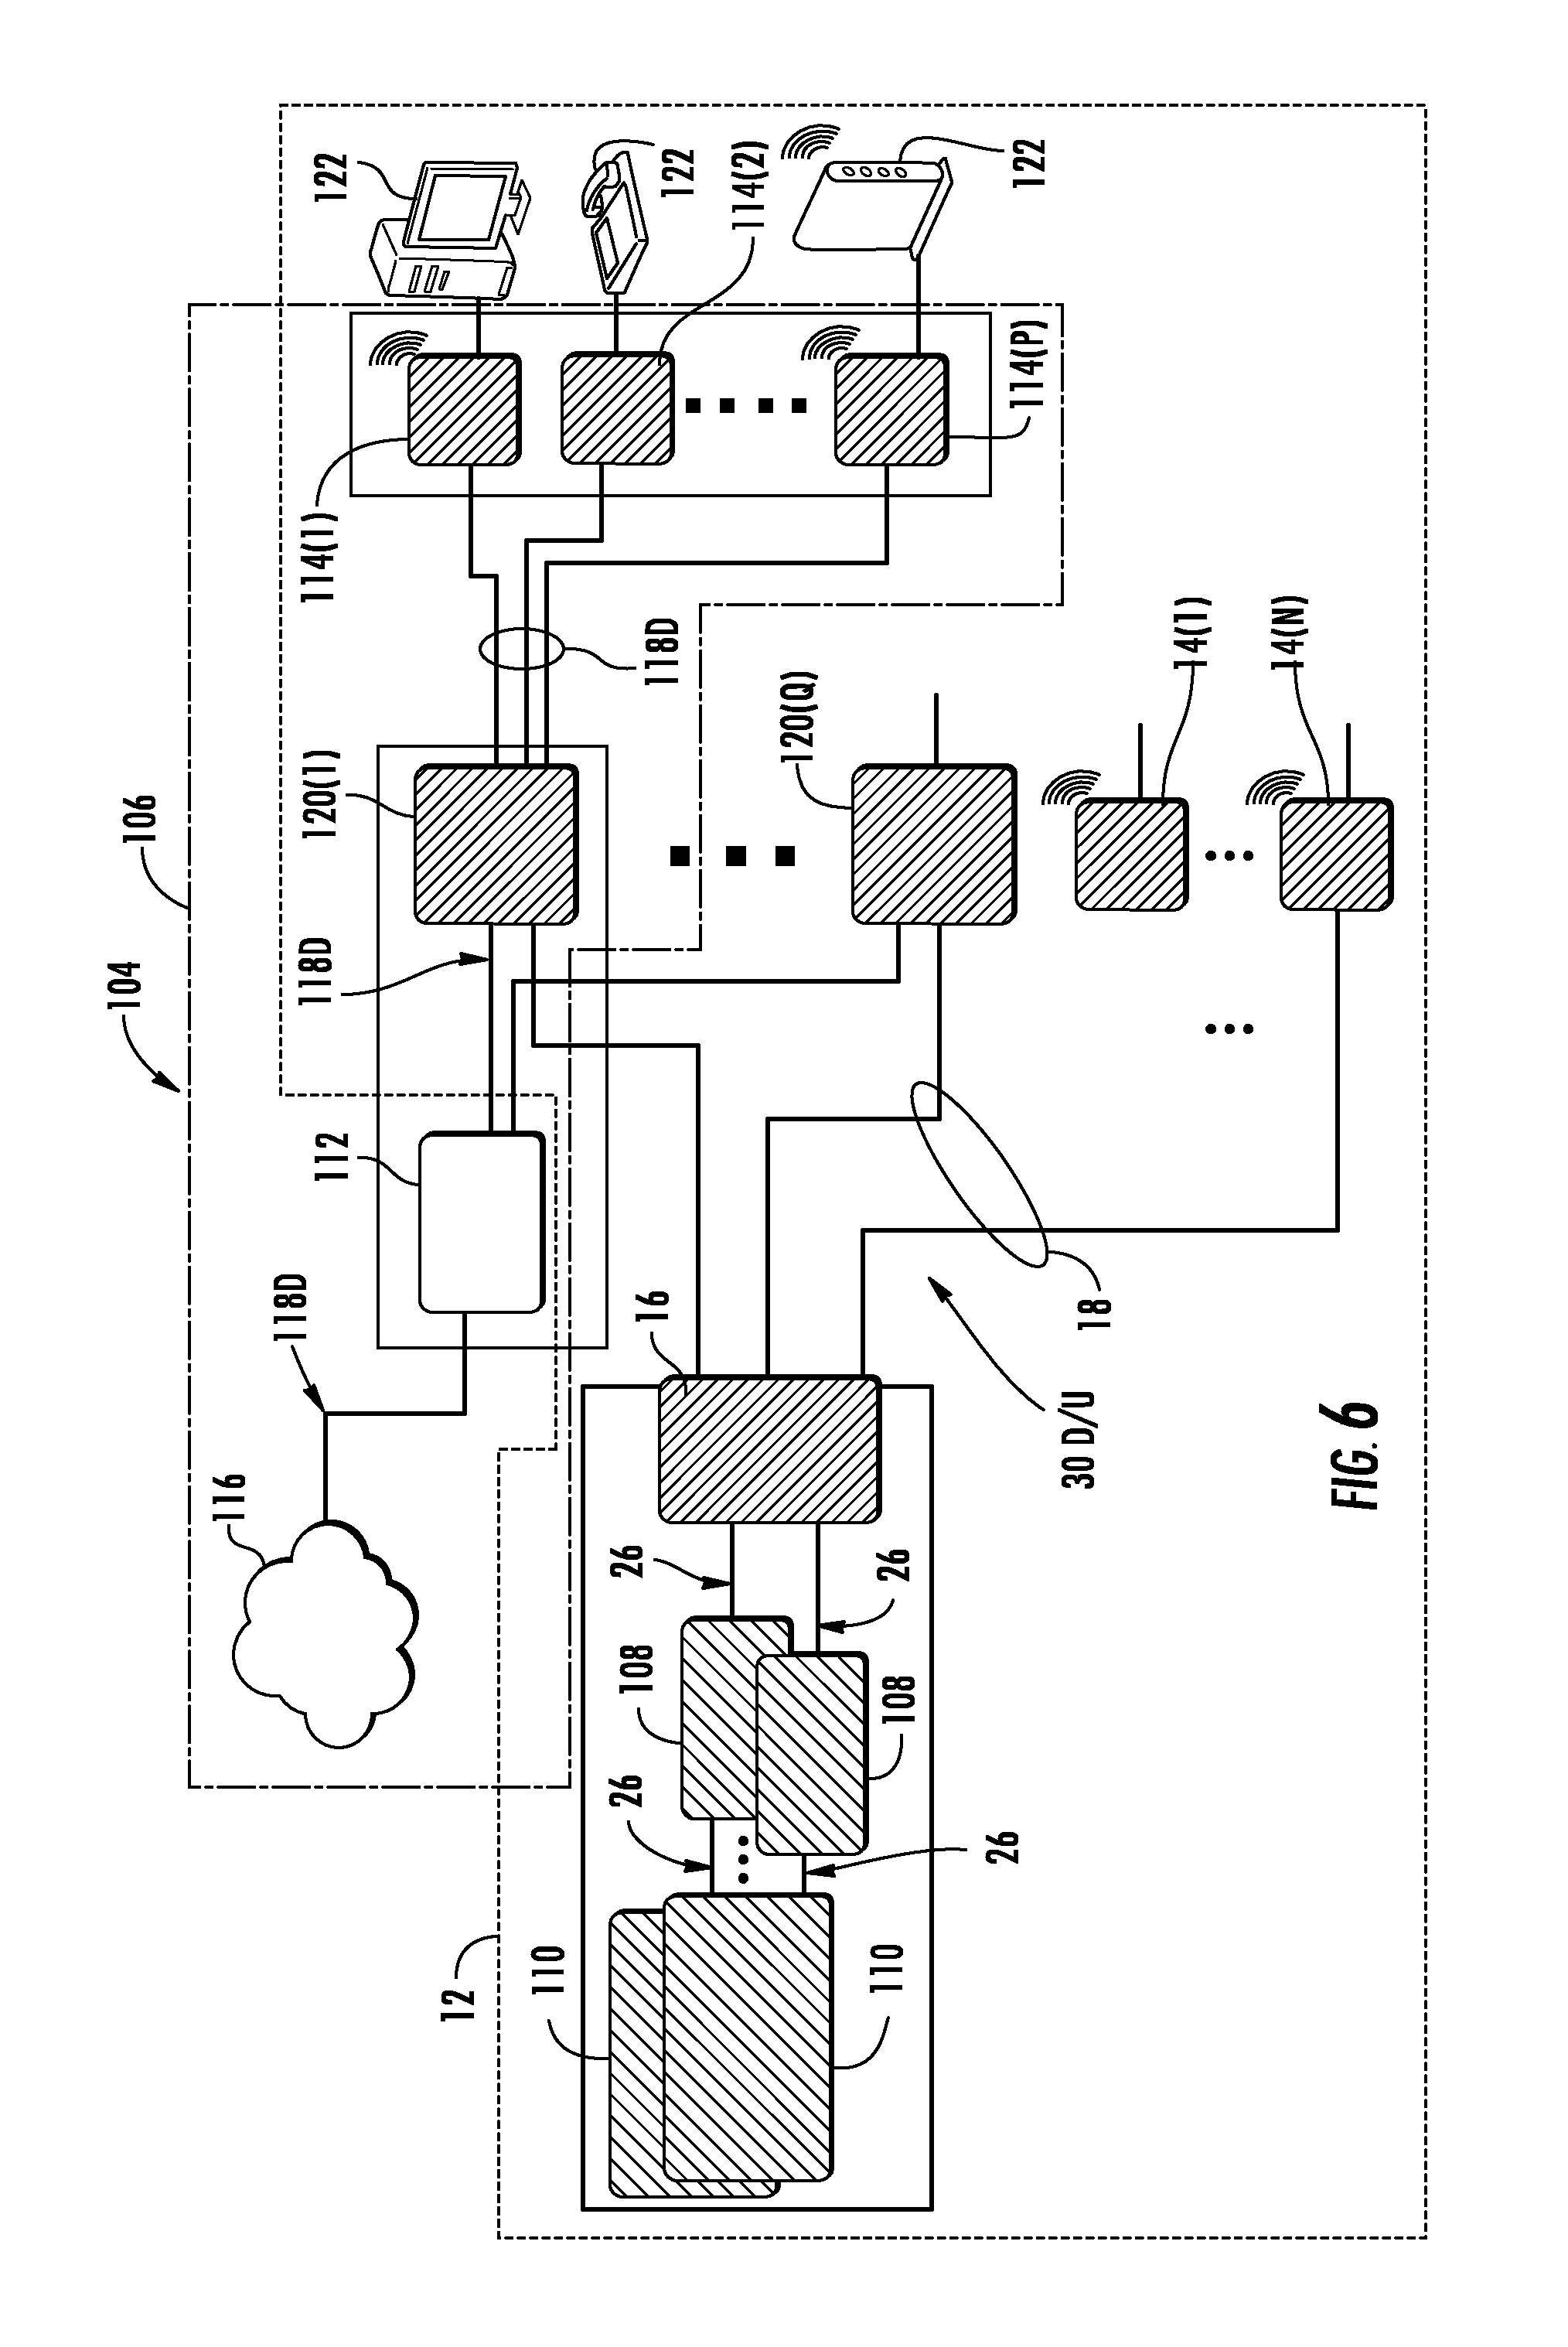 Patent Us20140293894 Distributing Dynamically Frequency Shifted Nokia 2690 Circuit Diagram Drawing